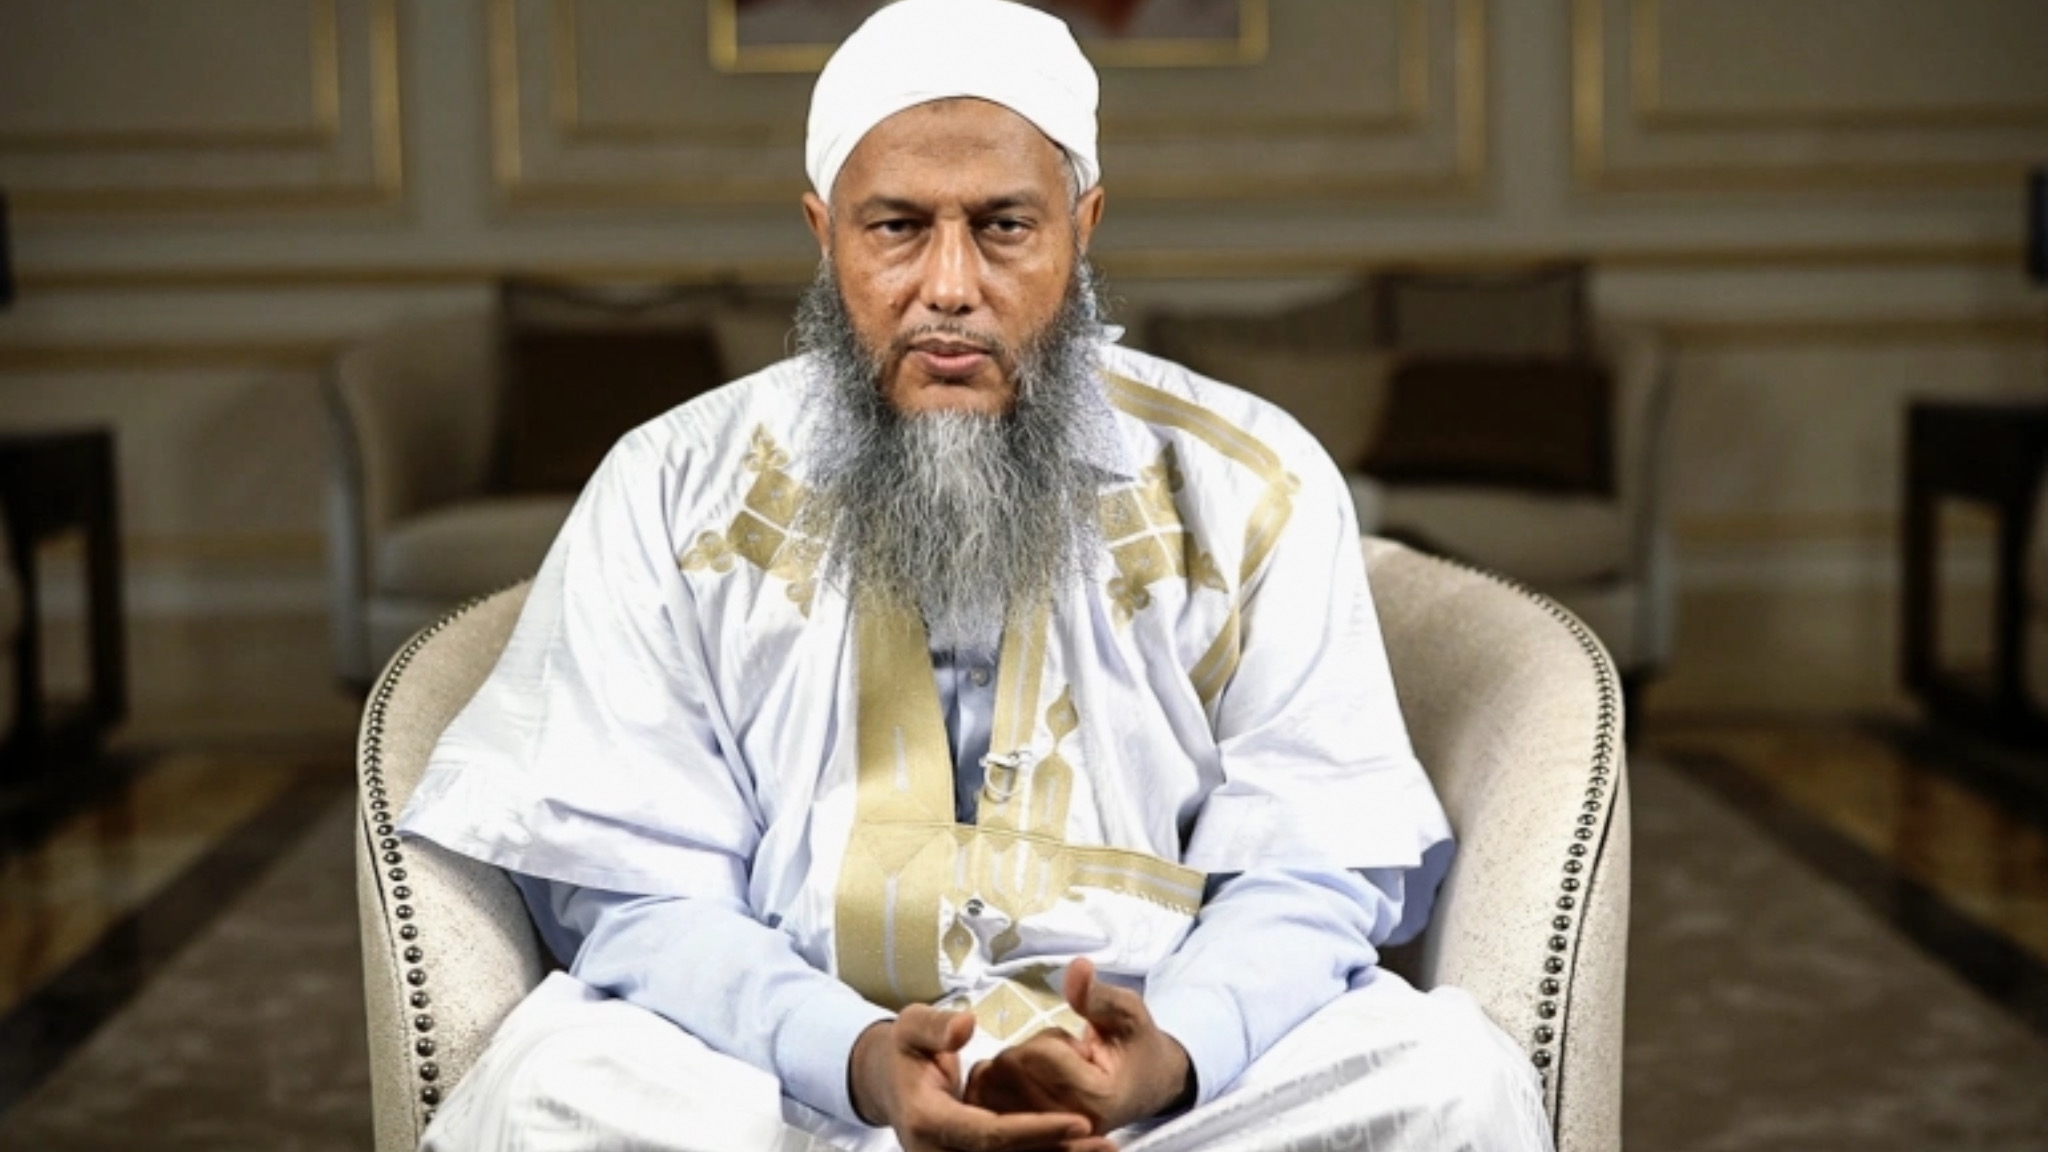 A Muslim Brotherhood leader calls for murder against Charlie Hebdo